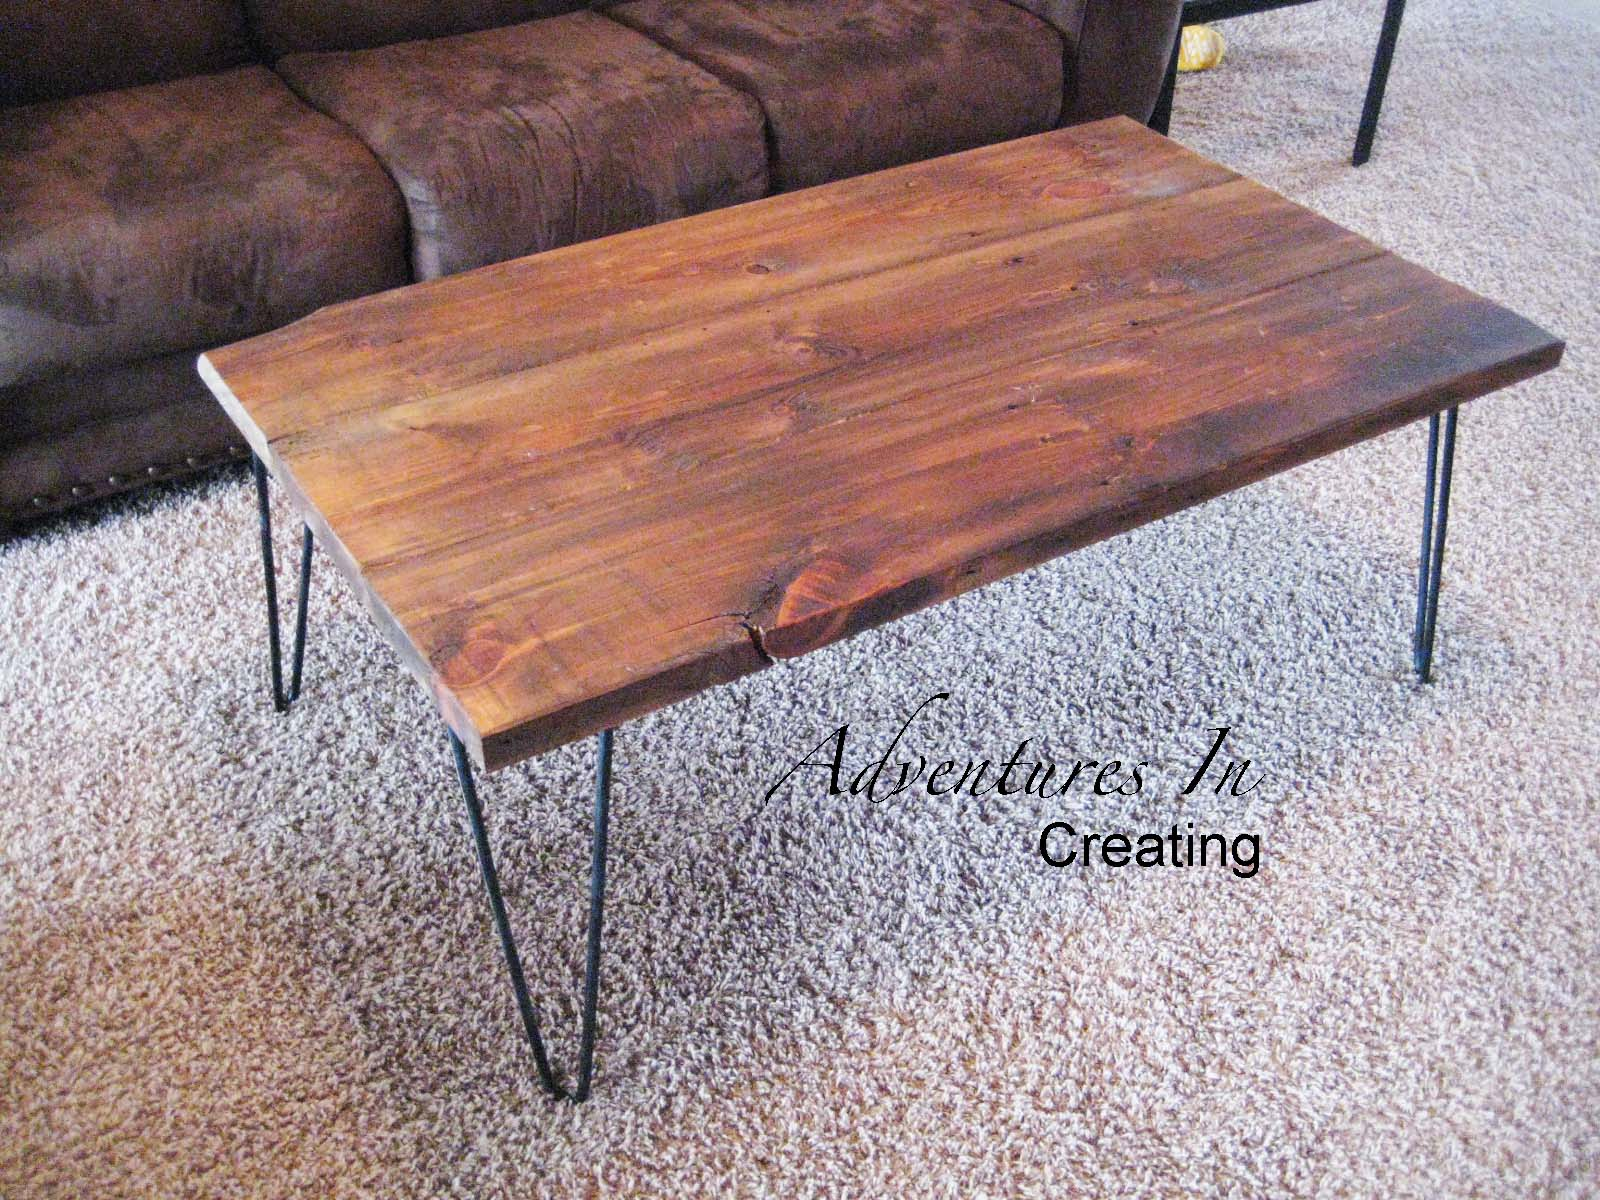 wooden coffee table with hairpin legs, Adventures in Creating via  Remodelaholic Reclaimed Wood ...